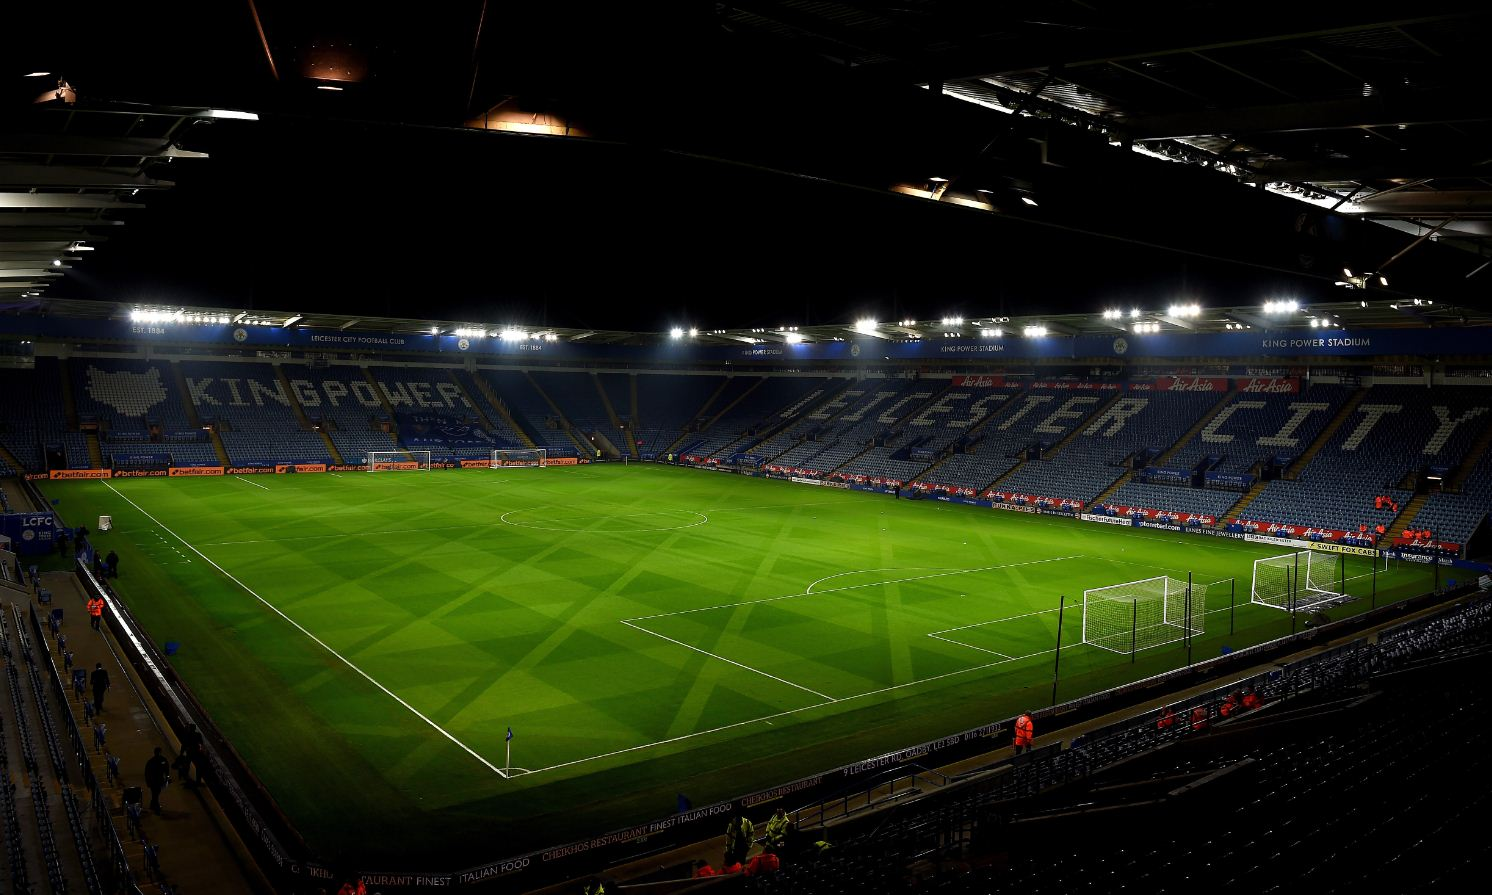 King Power Stadium / Getty Images